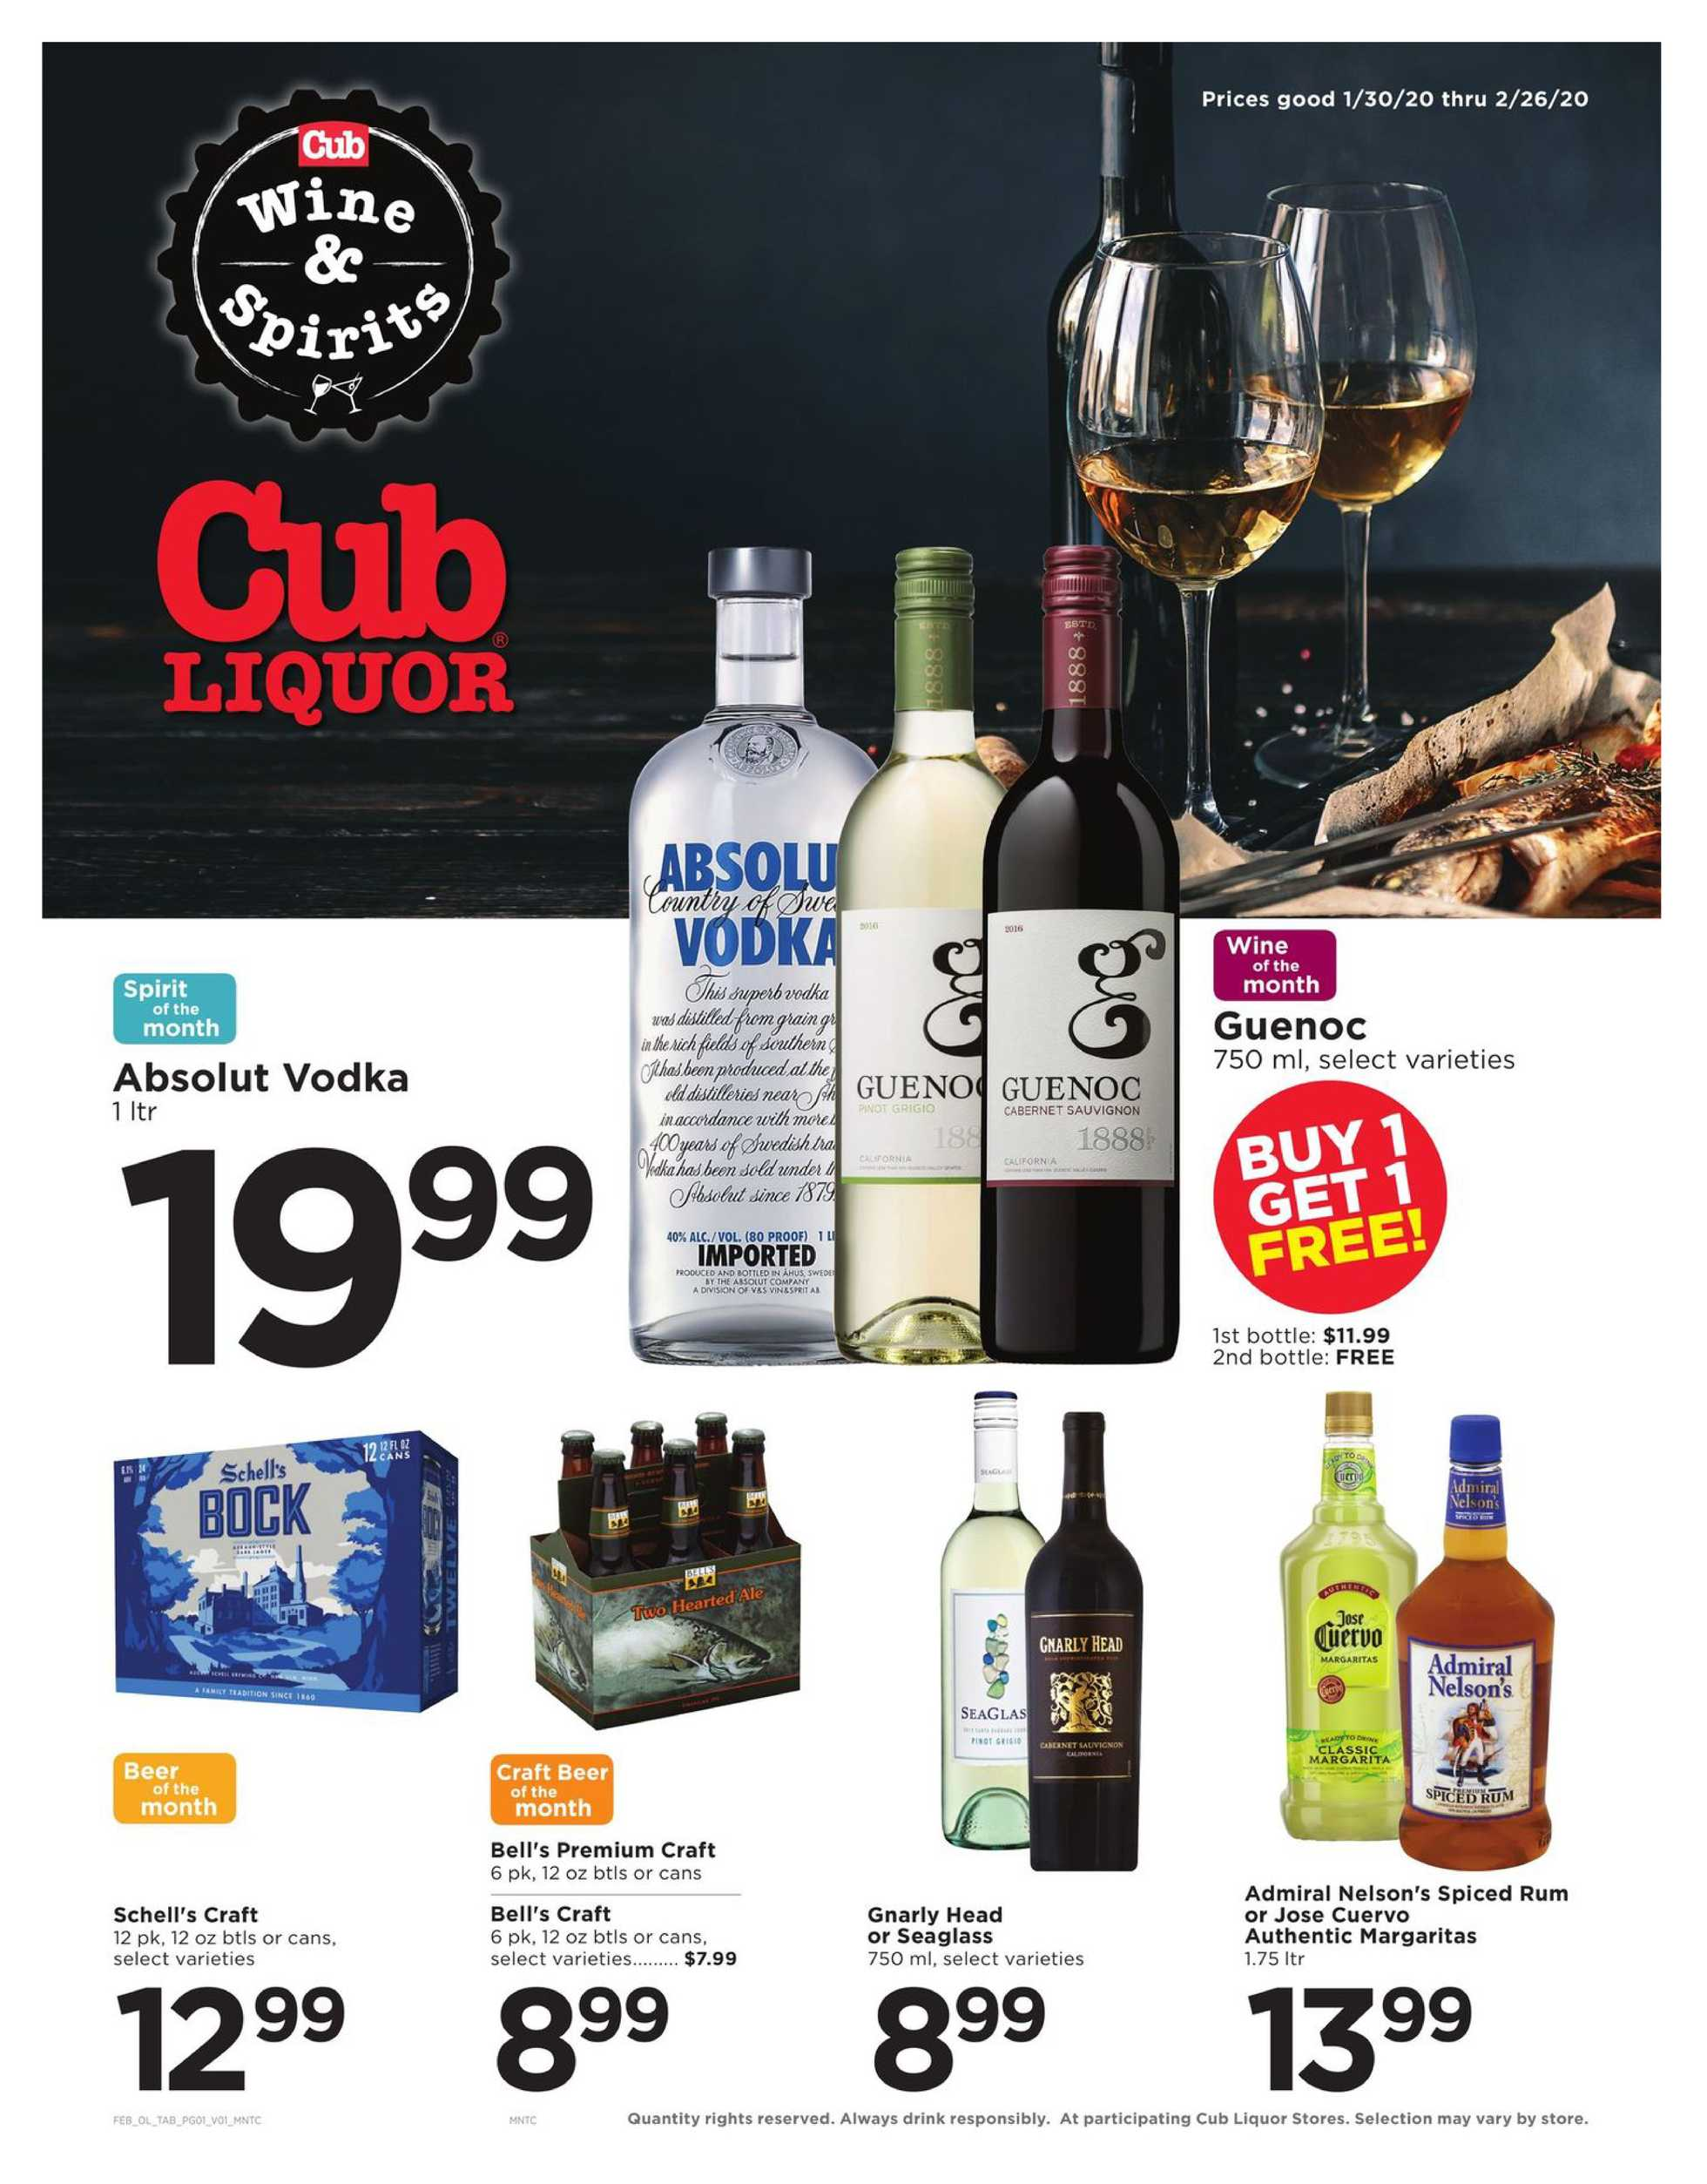 Cub - promo starting from 01/30/20 to 02/26/20 - page 1.